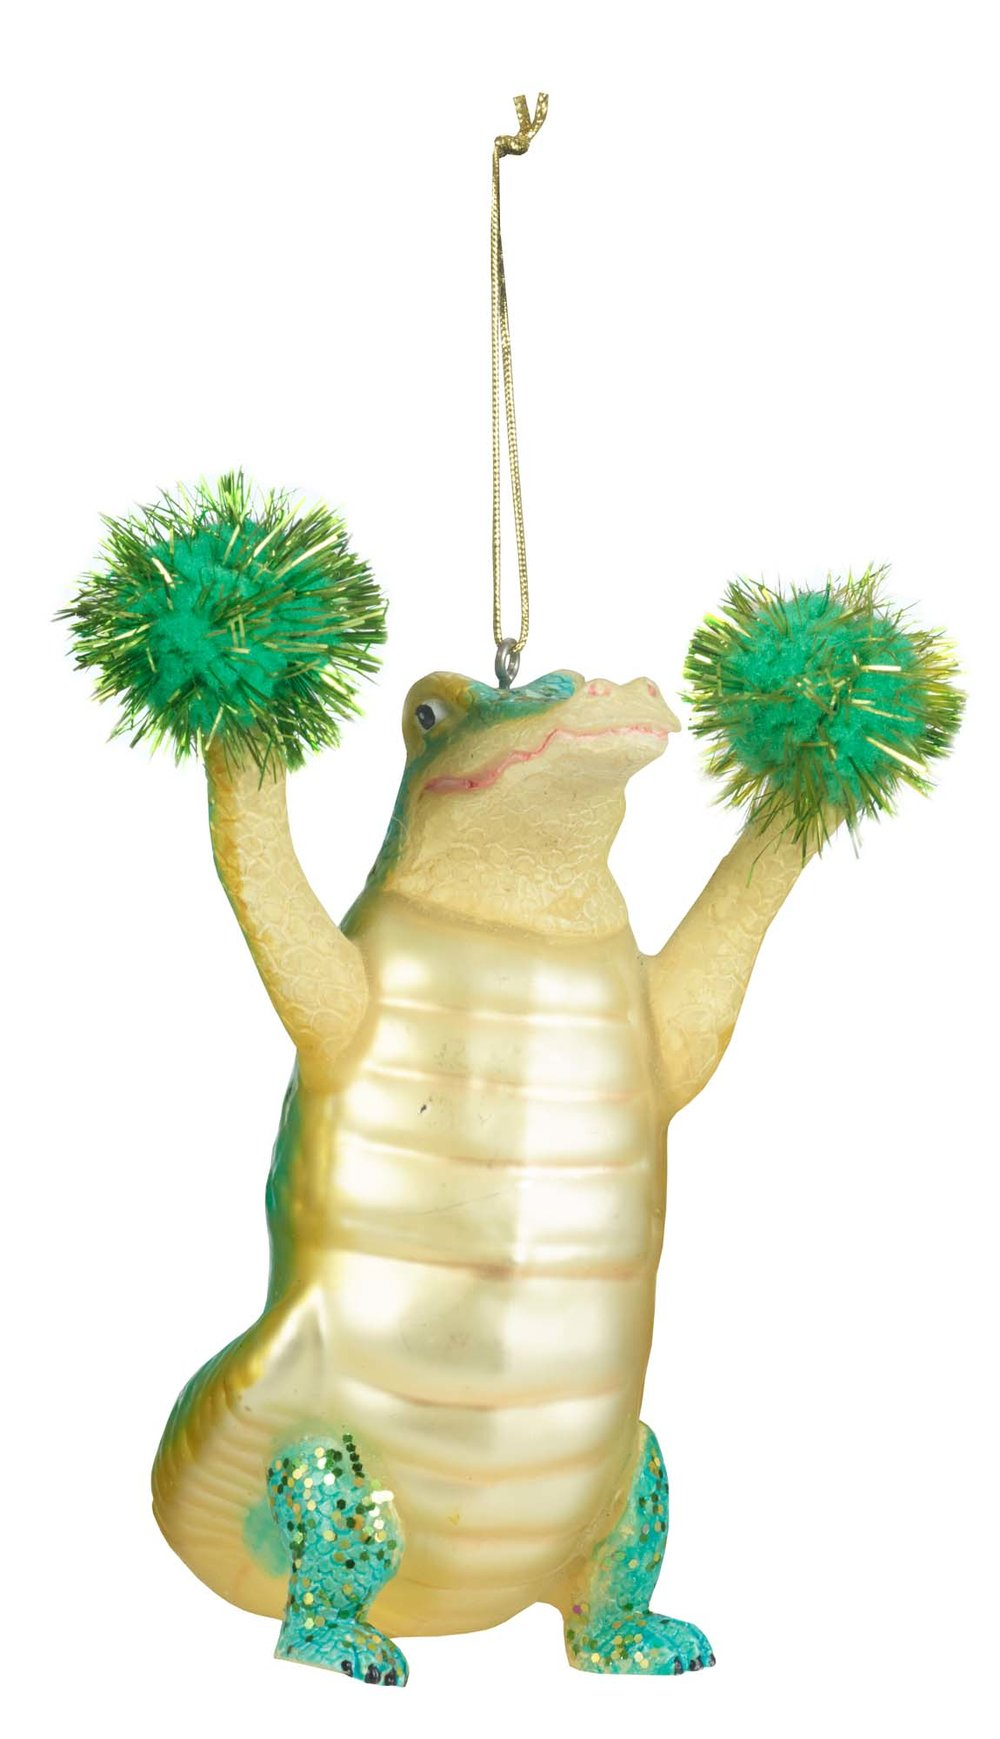 Paperchase's cheerleading alligator